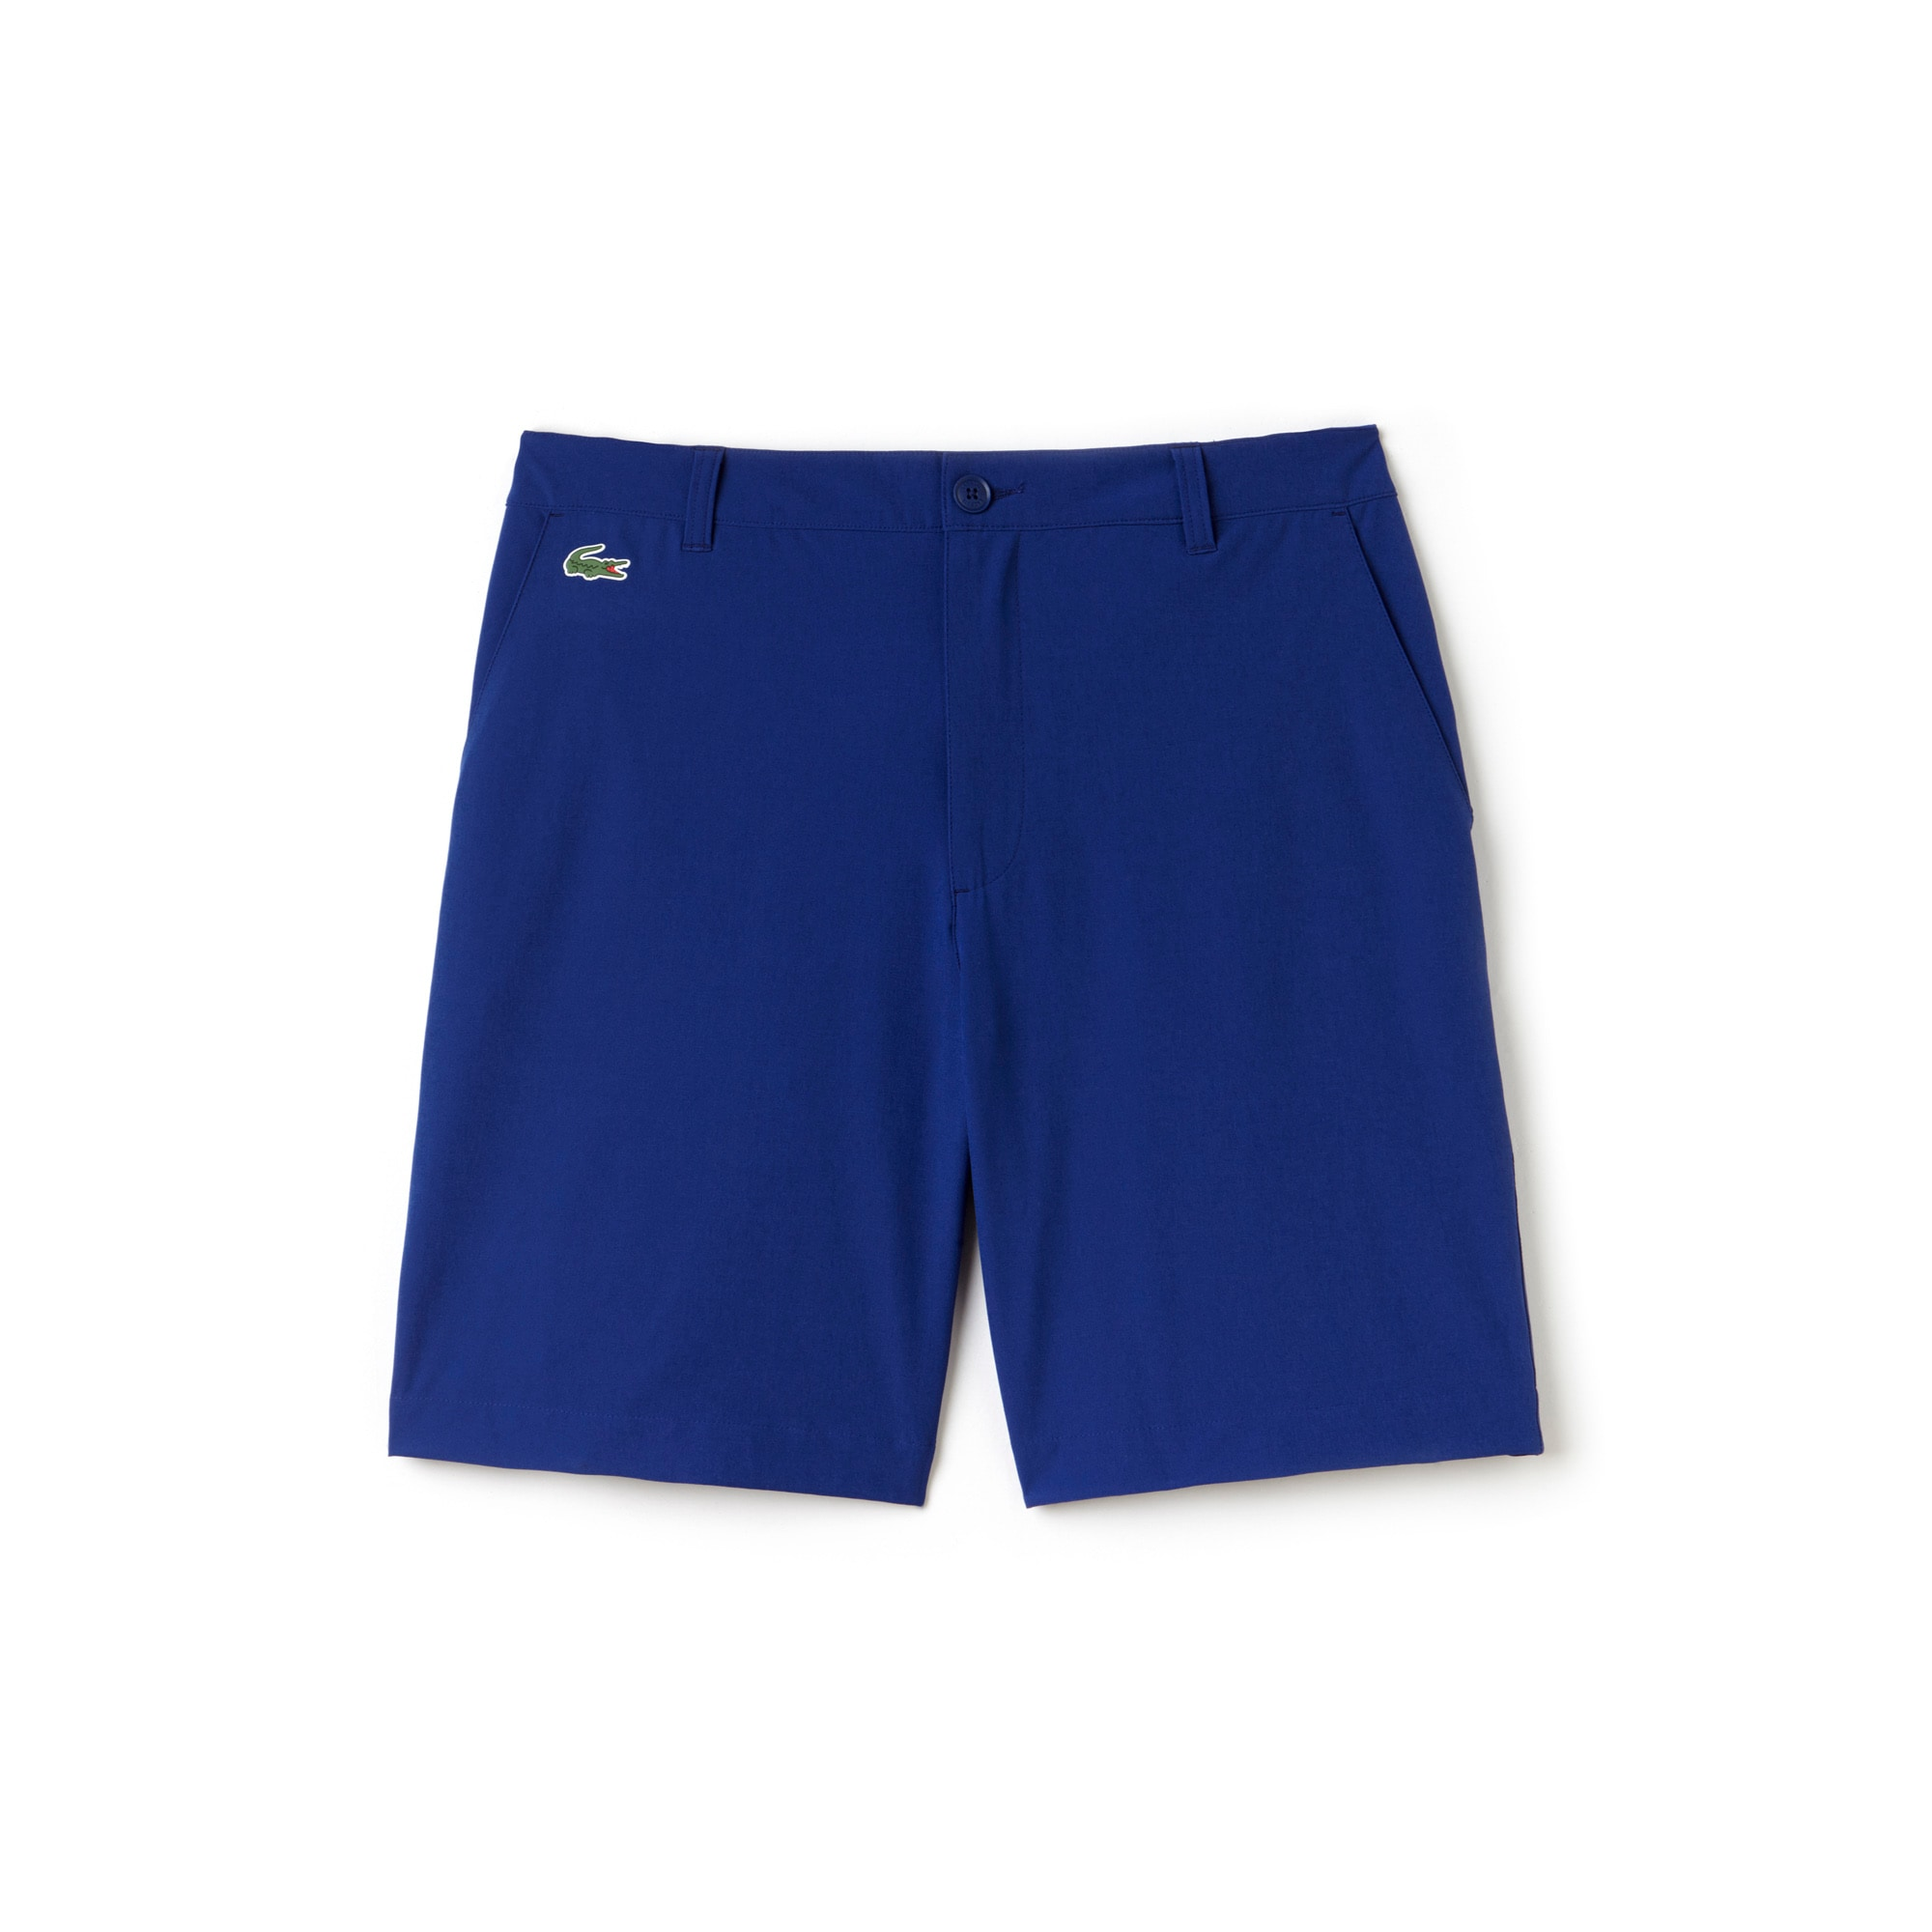 라코스테 Lacoste Mens SPORT Golf Stretch Bermudas,varsity blue